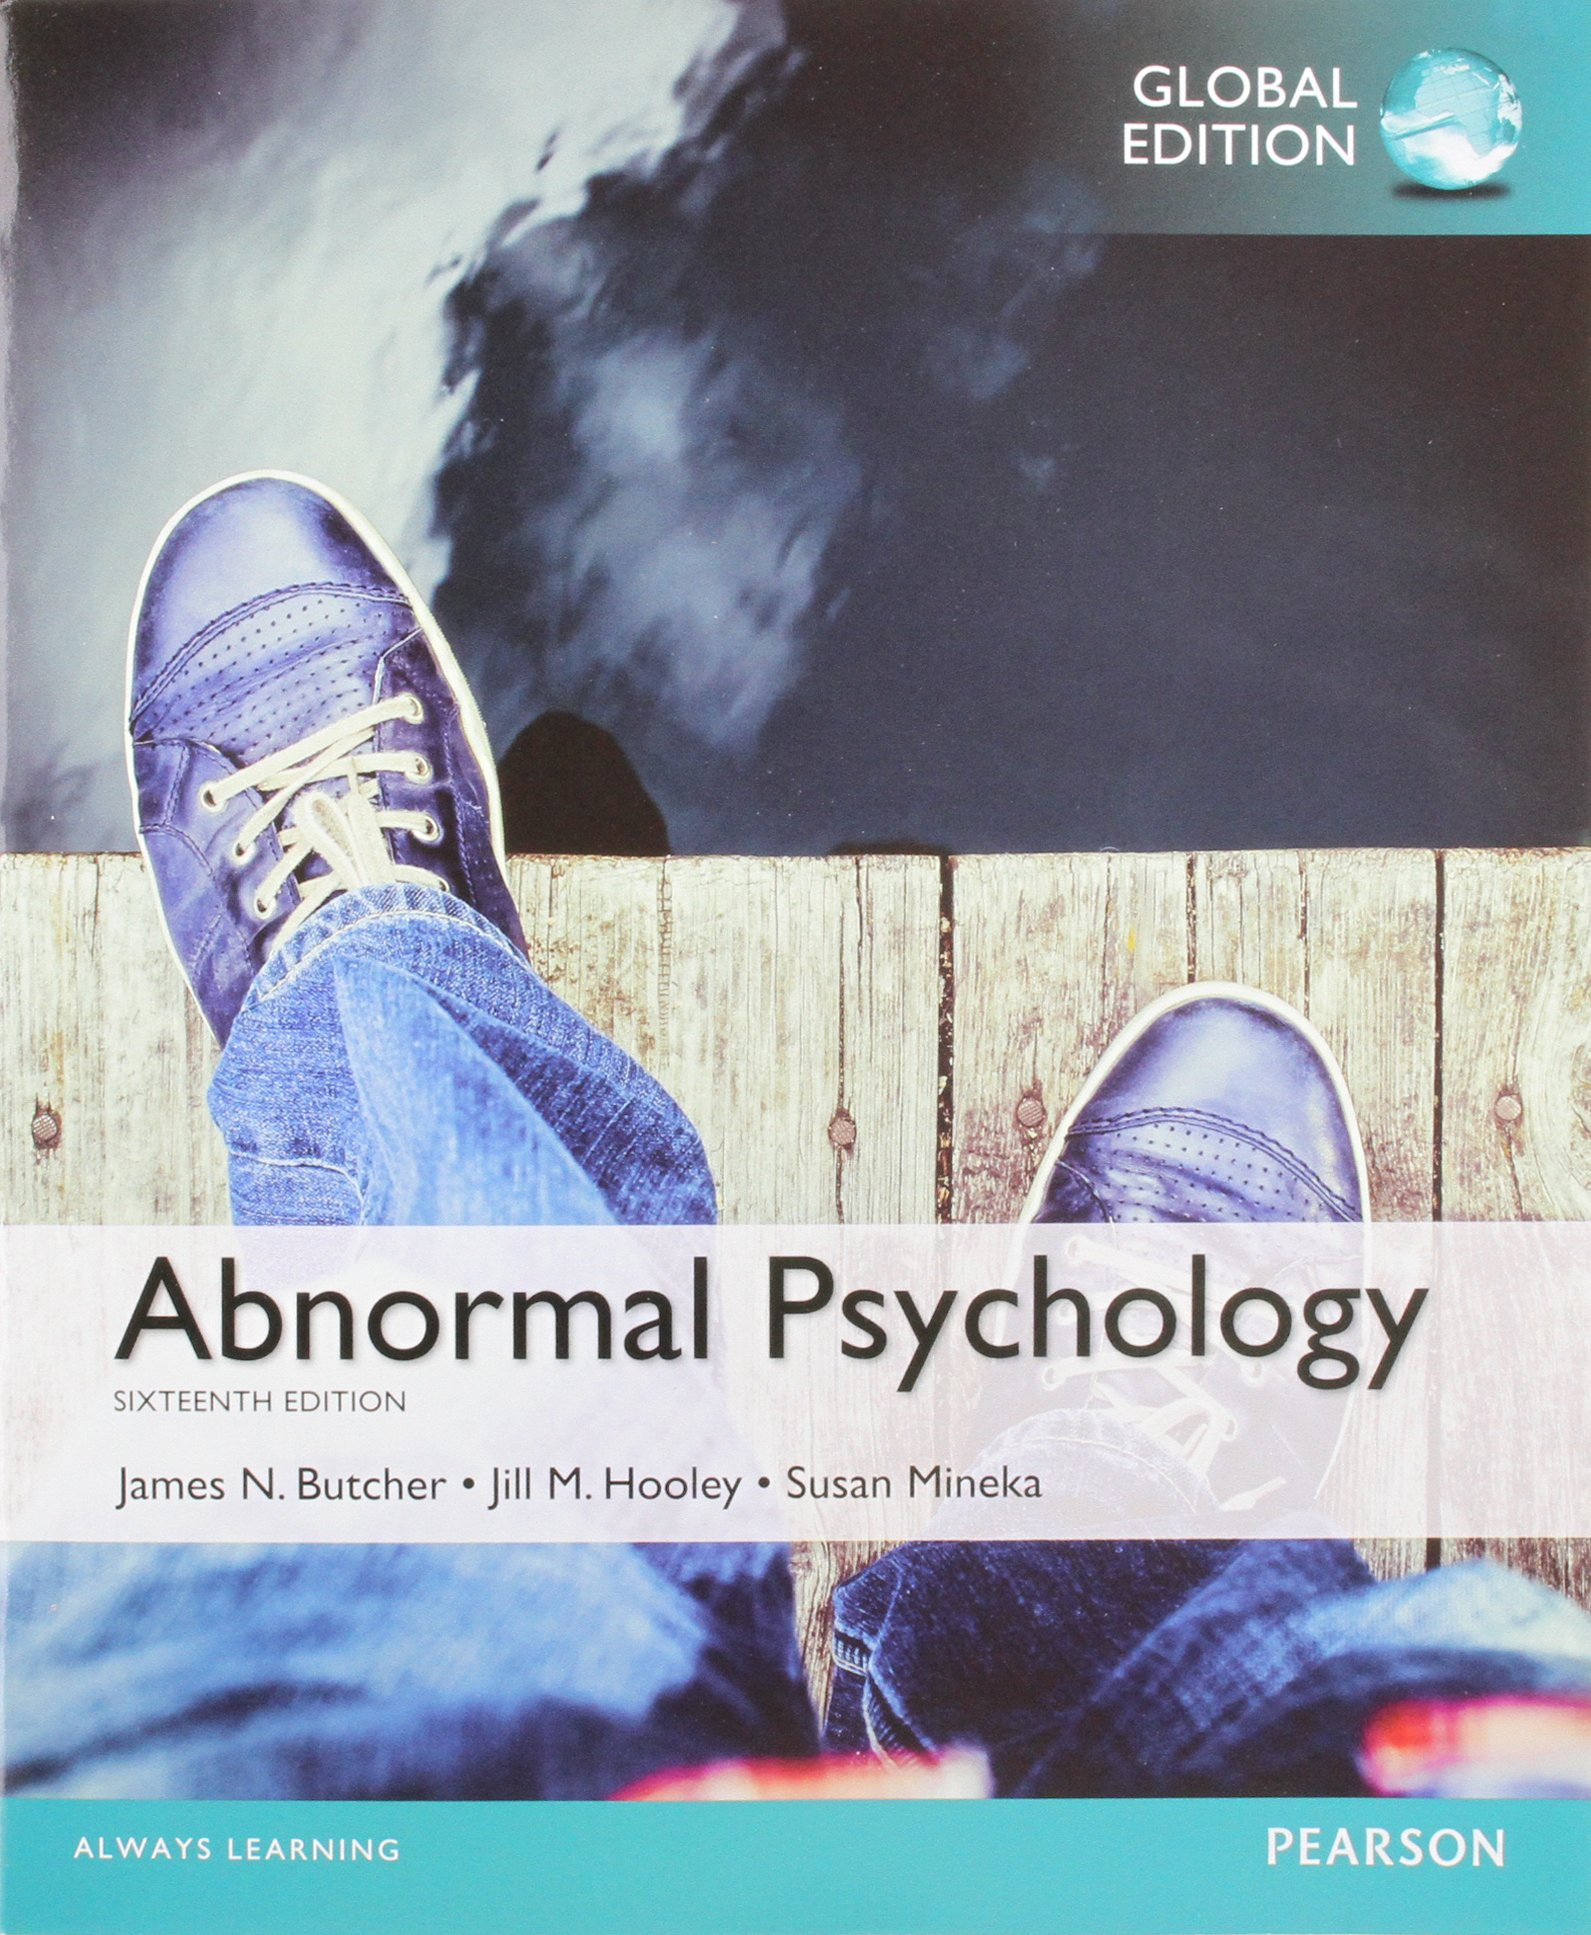 Abnormal Psychology 17th Edition Pdf Free Download